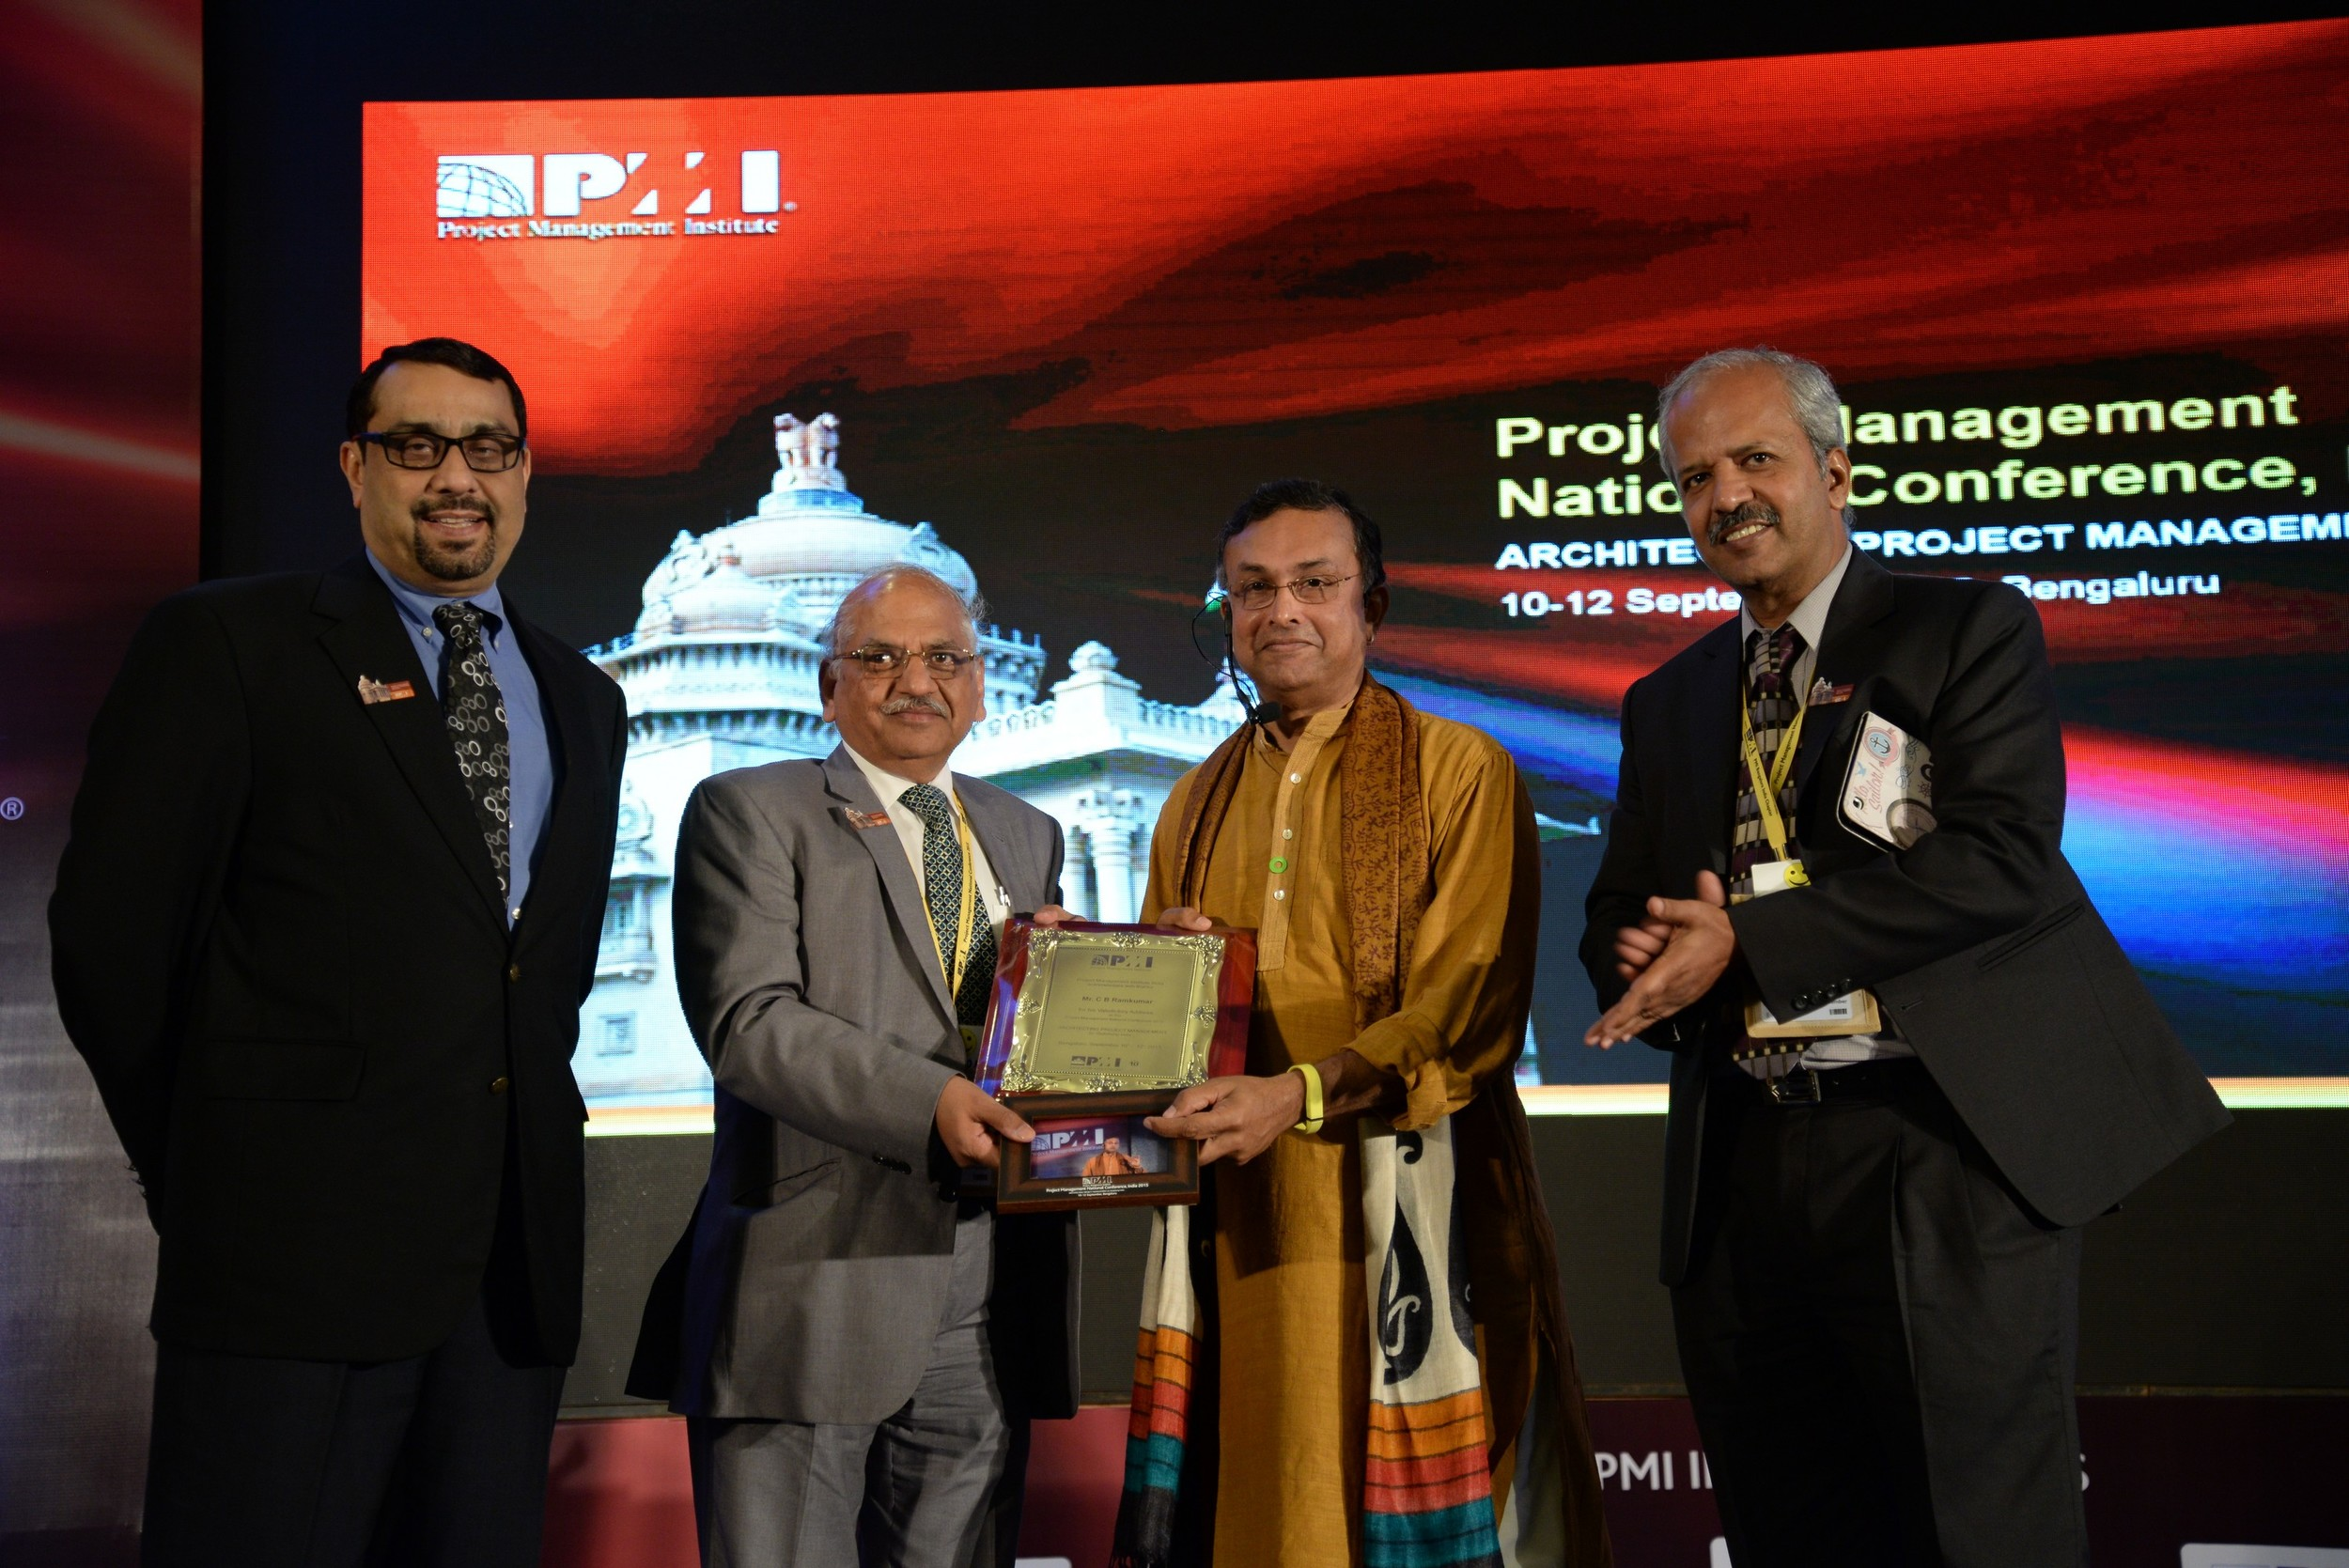 Valedictory address at the national conference of the Progect Management Institute, Bangalore 2015